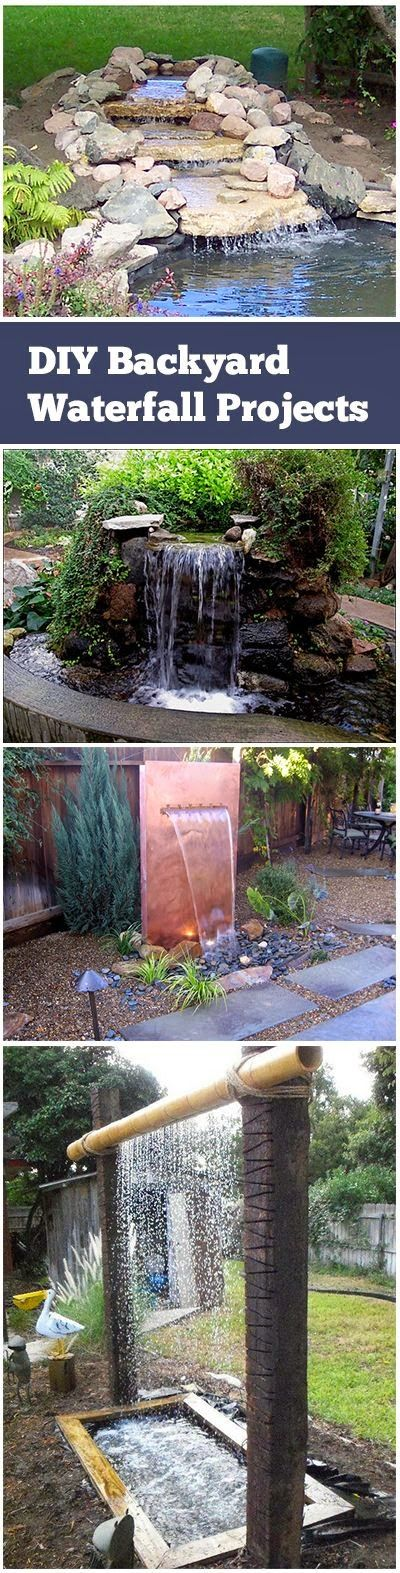 price engagement ring DIY Backyard Waterfall Projects